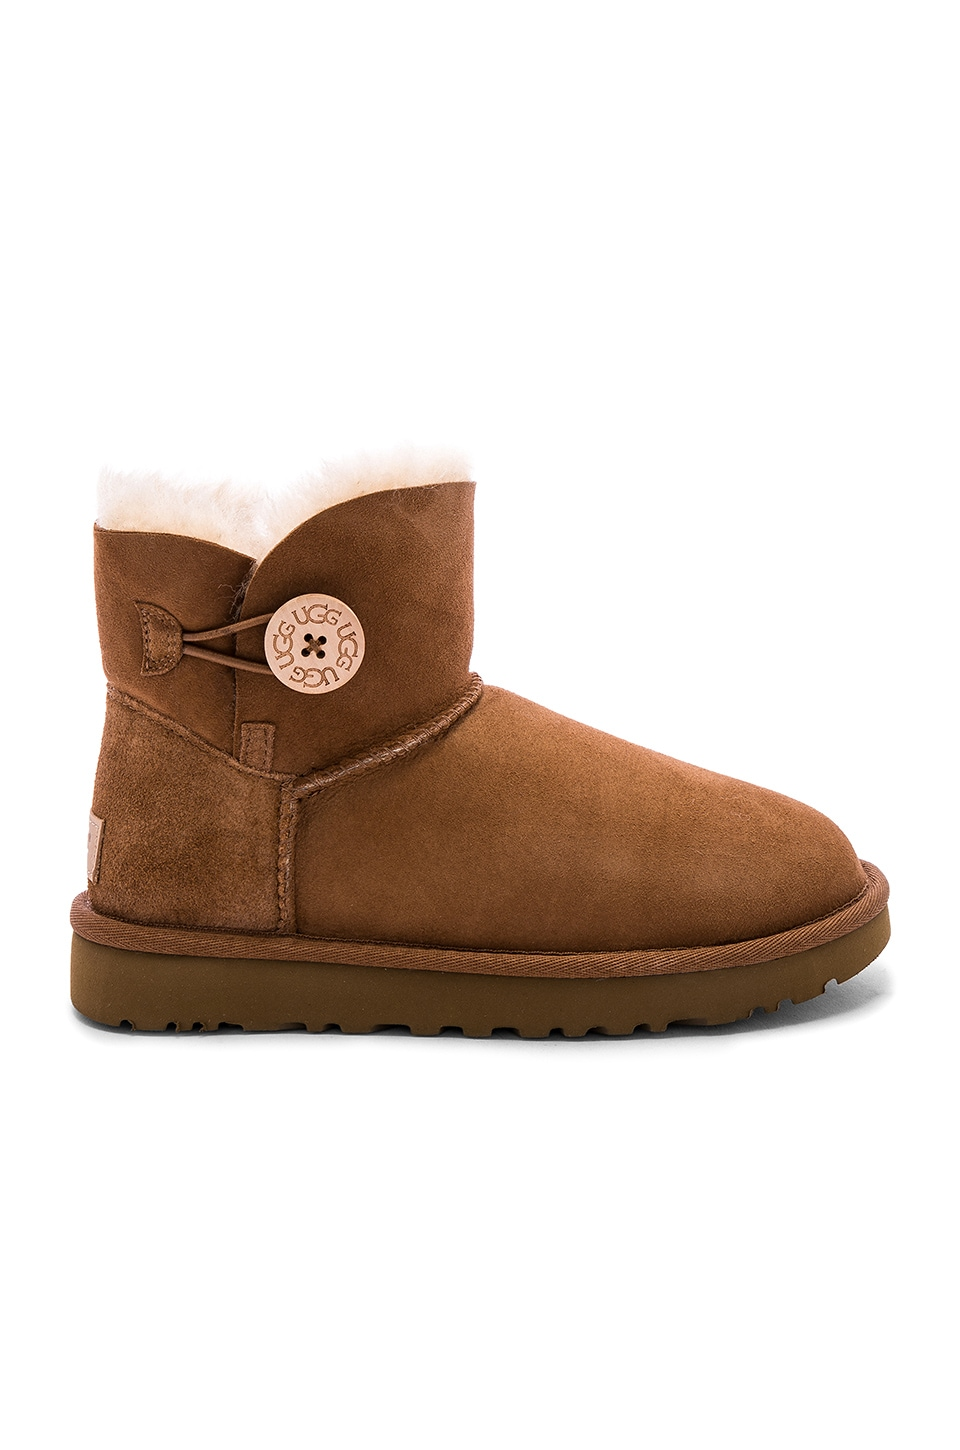 UGG Mini Bailey Button II Bootie in Chestnut